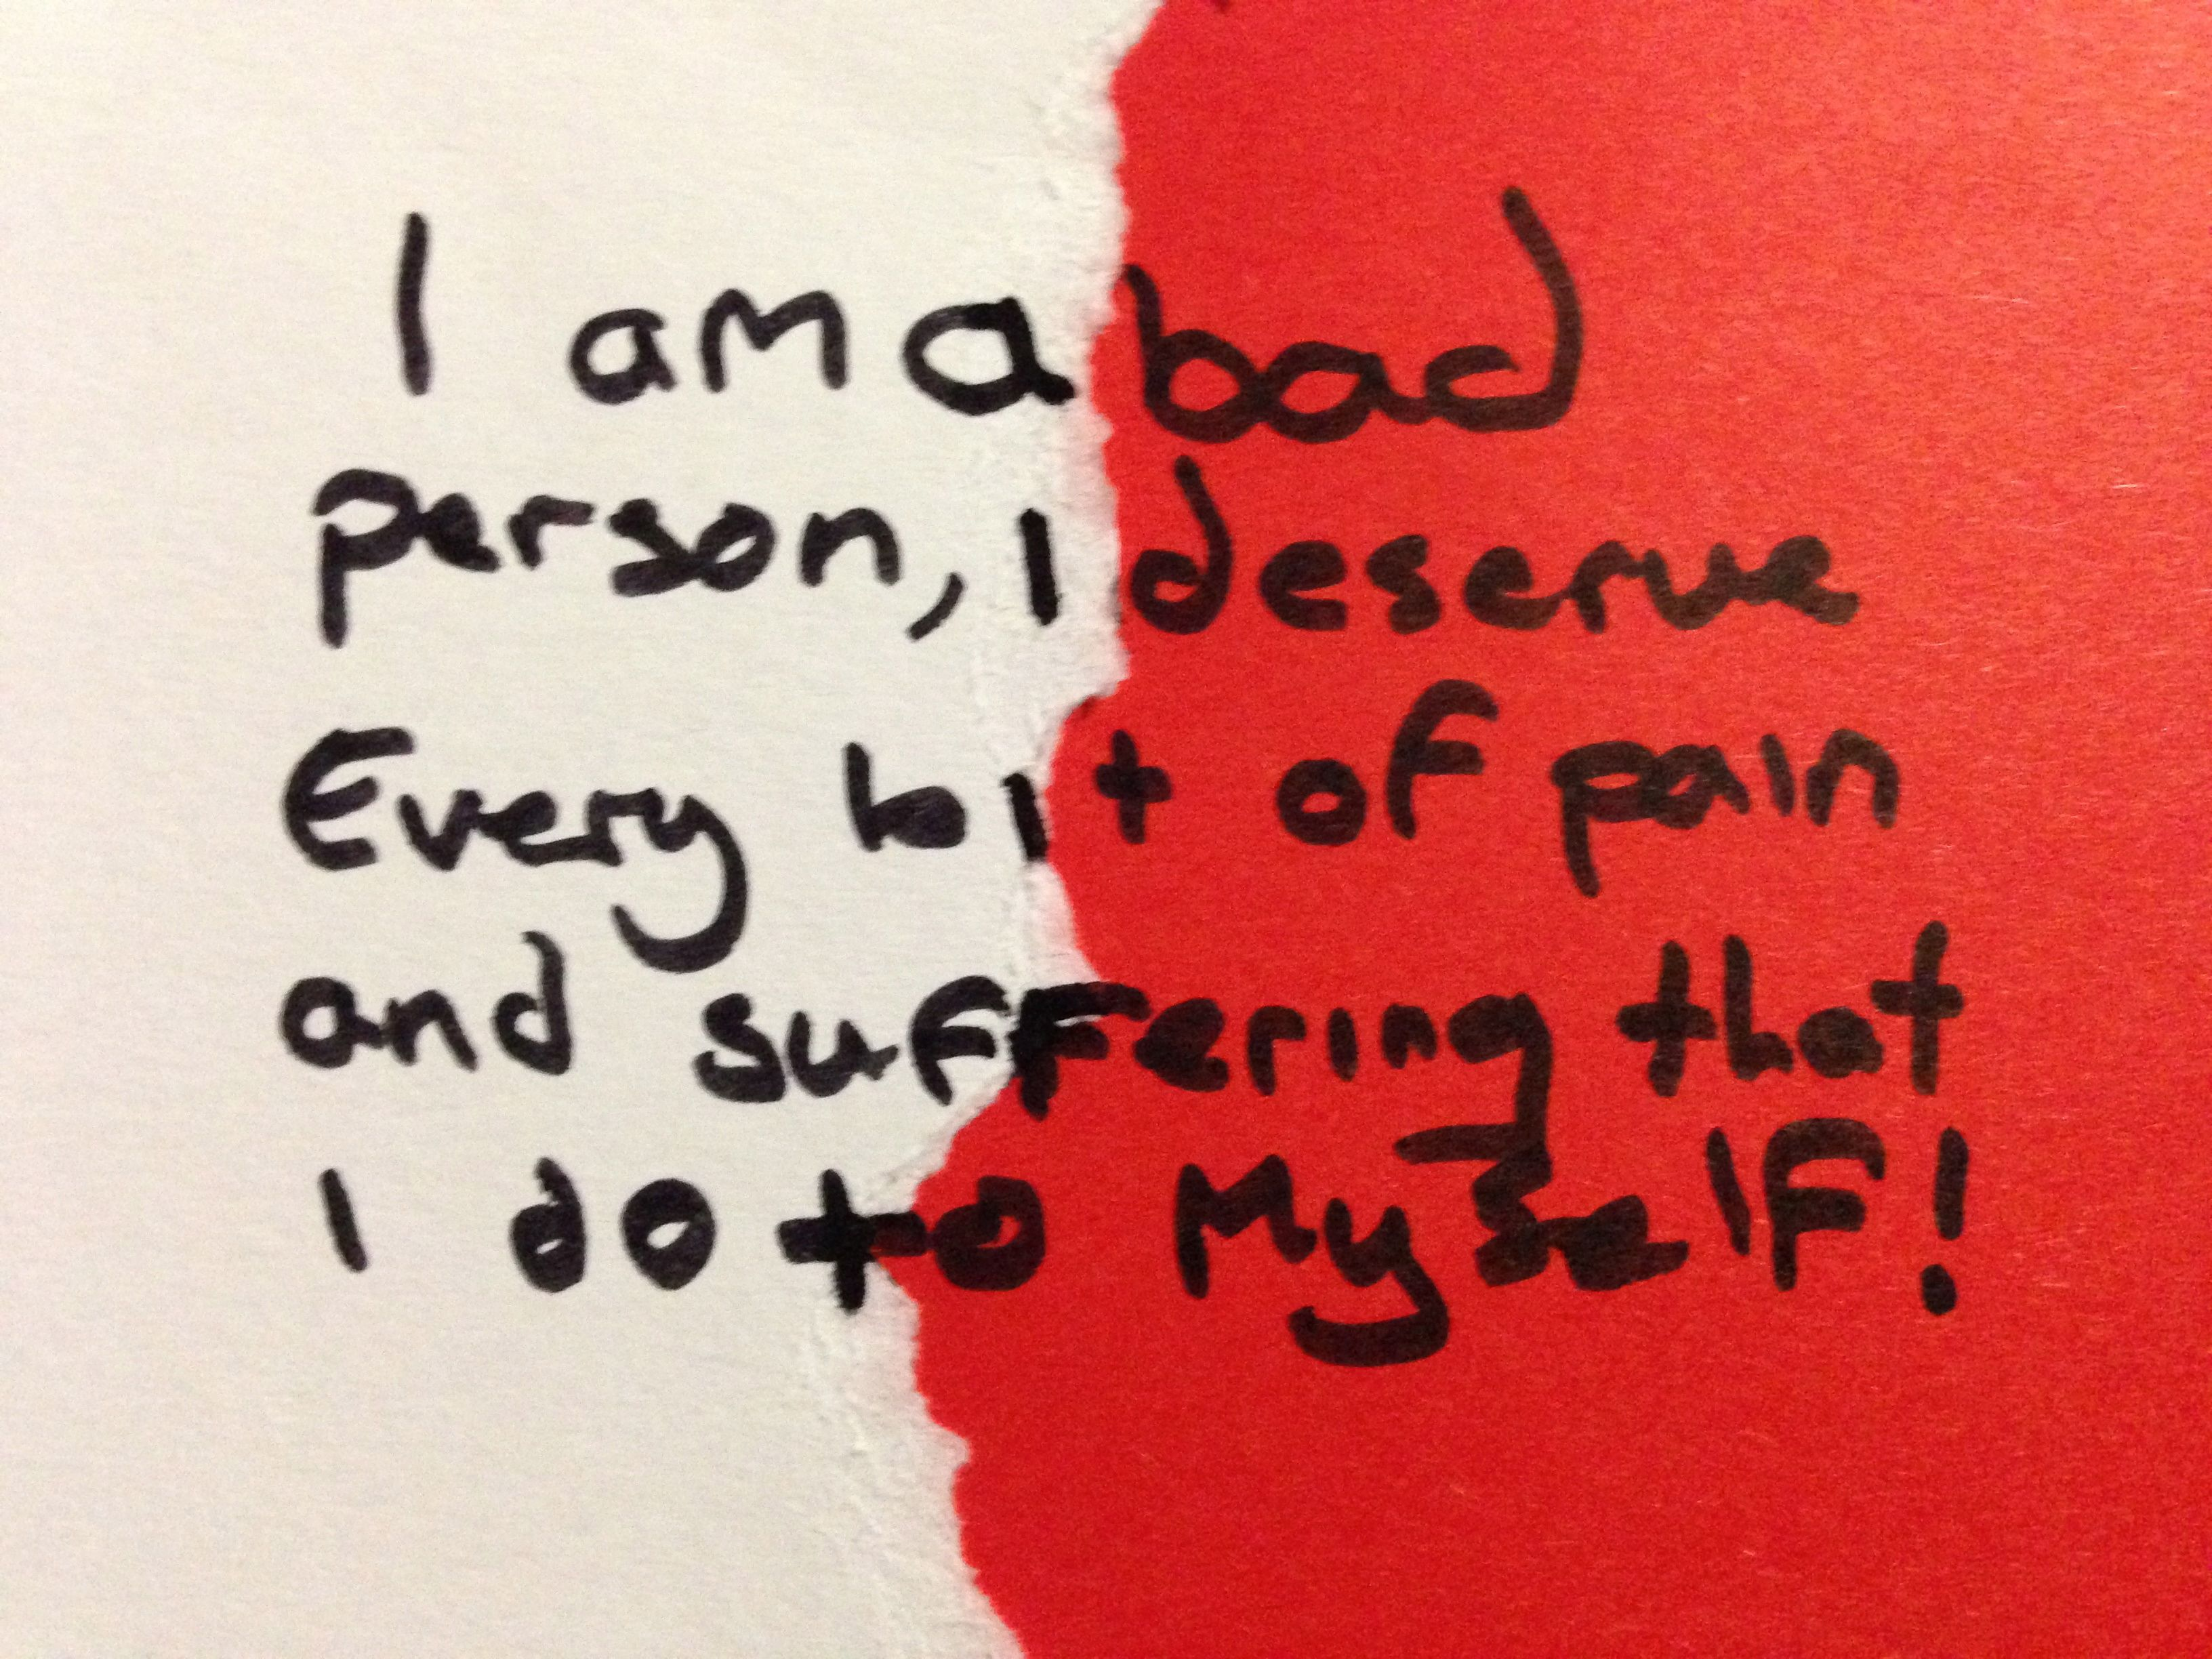 I Am A Bad Person I Deserve Every Bit Of Pain And Suffering That I